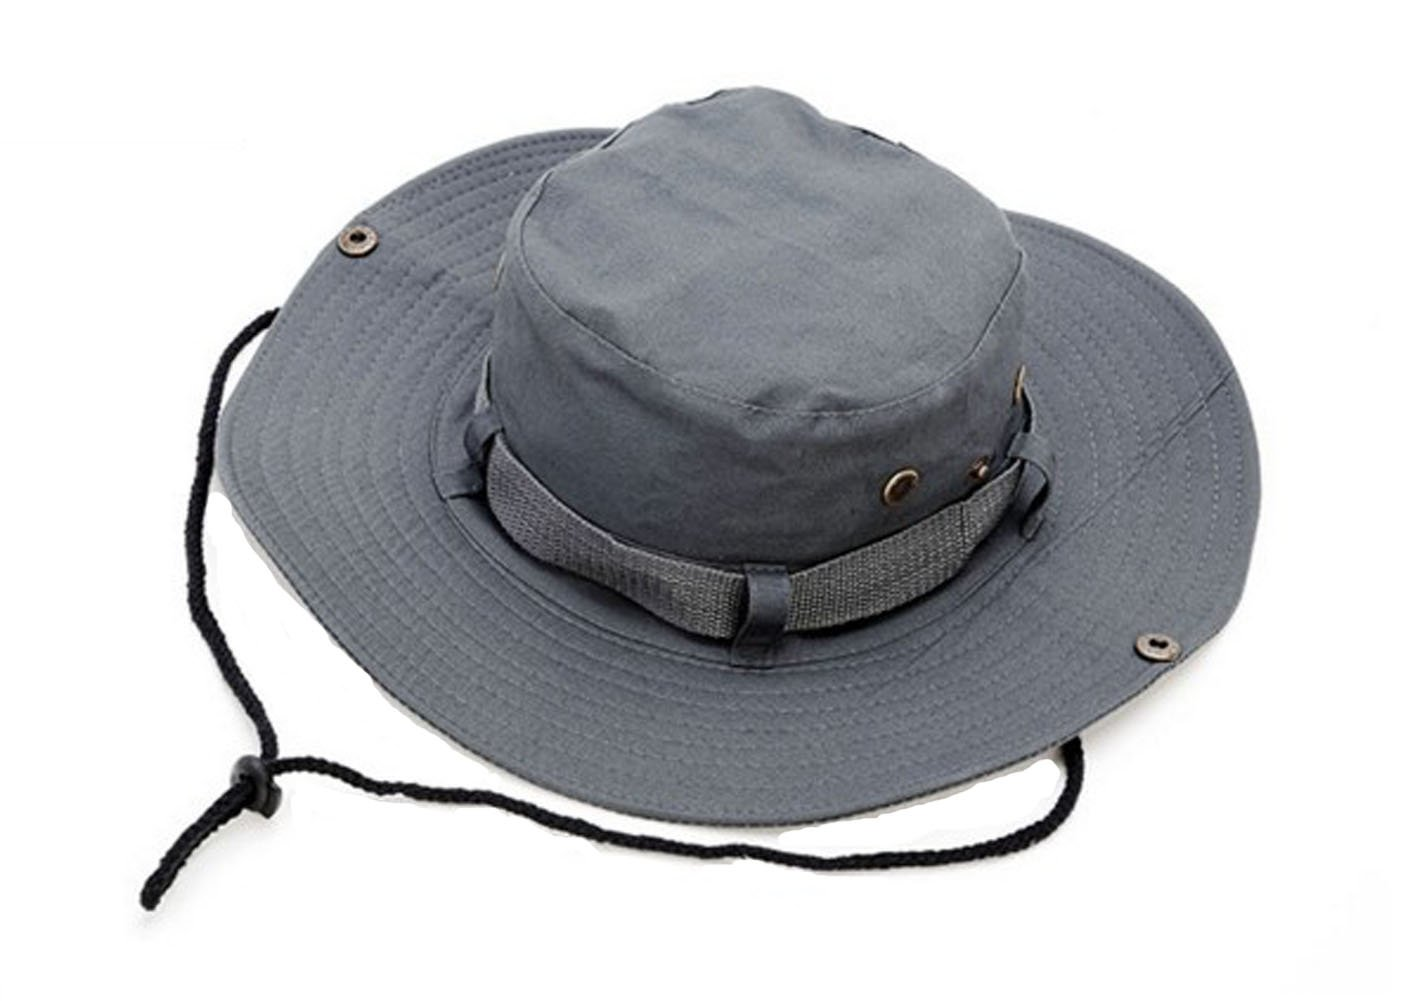 a958656c86bcf Amazon.com   Keross Unisex Wide Brim Sun Hat Perfect for All Outdoor  Activity UV Protection (grey)   Sports   Outdoors